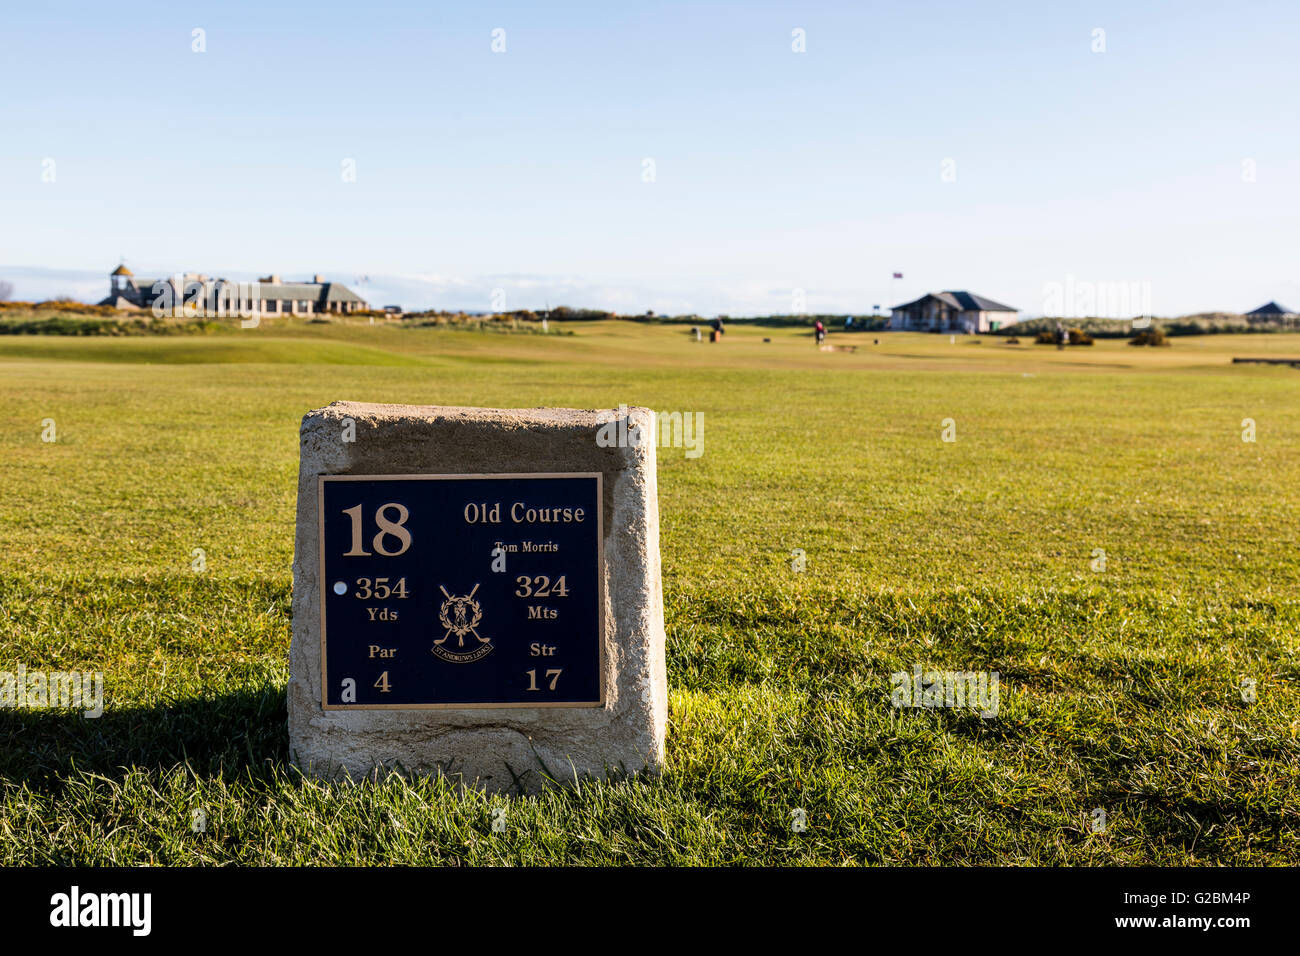 tee box, 18th hole, The Old Course at St Andrews, Scotland - Stock Image